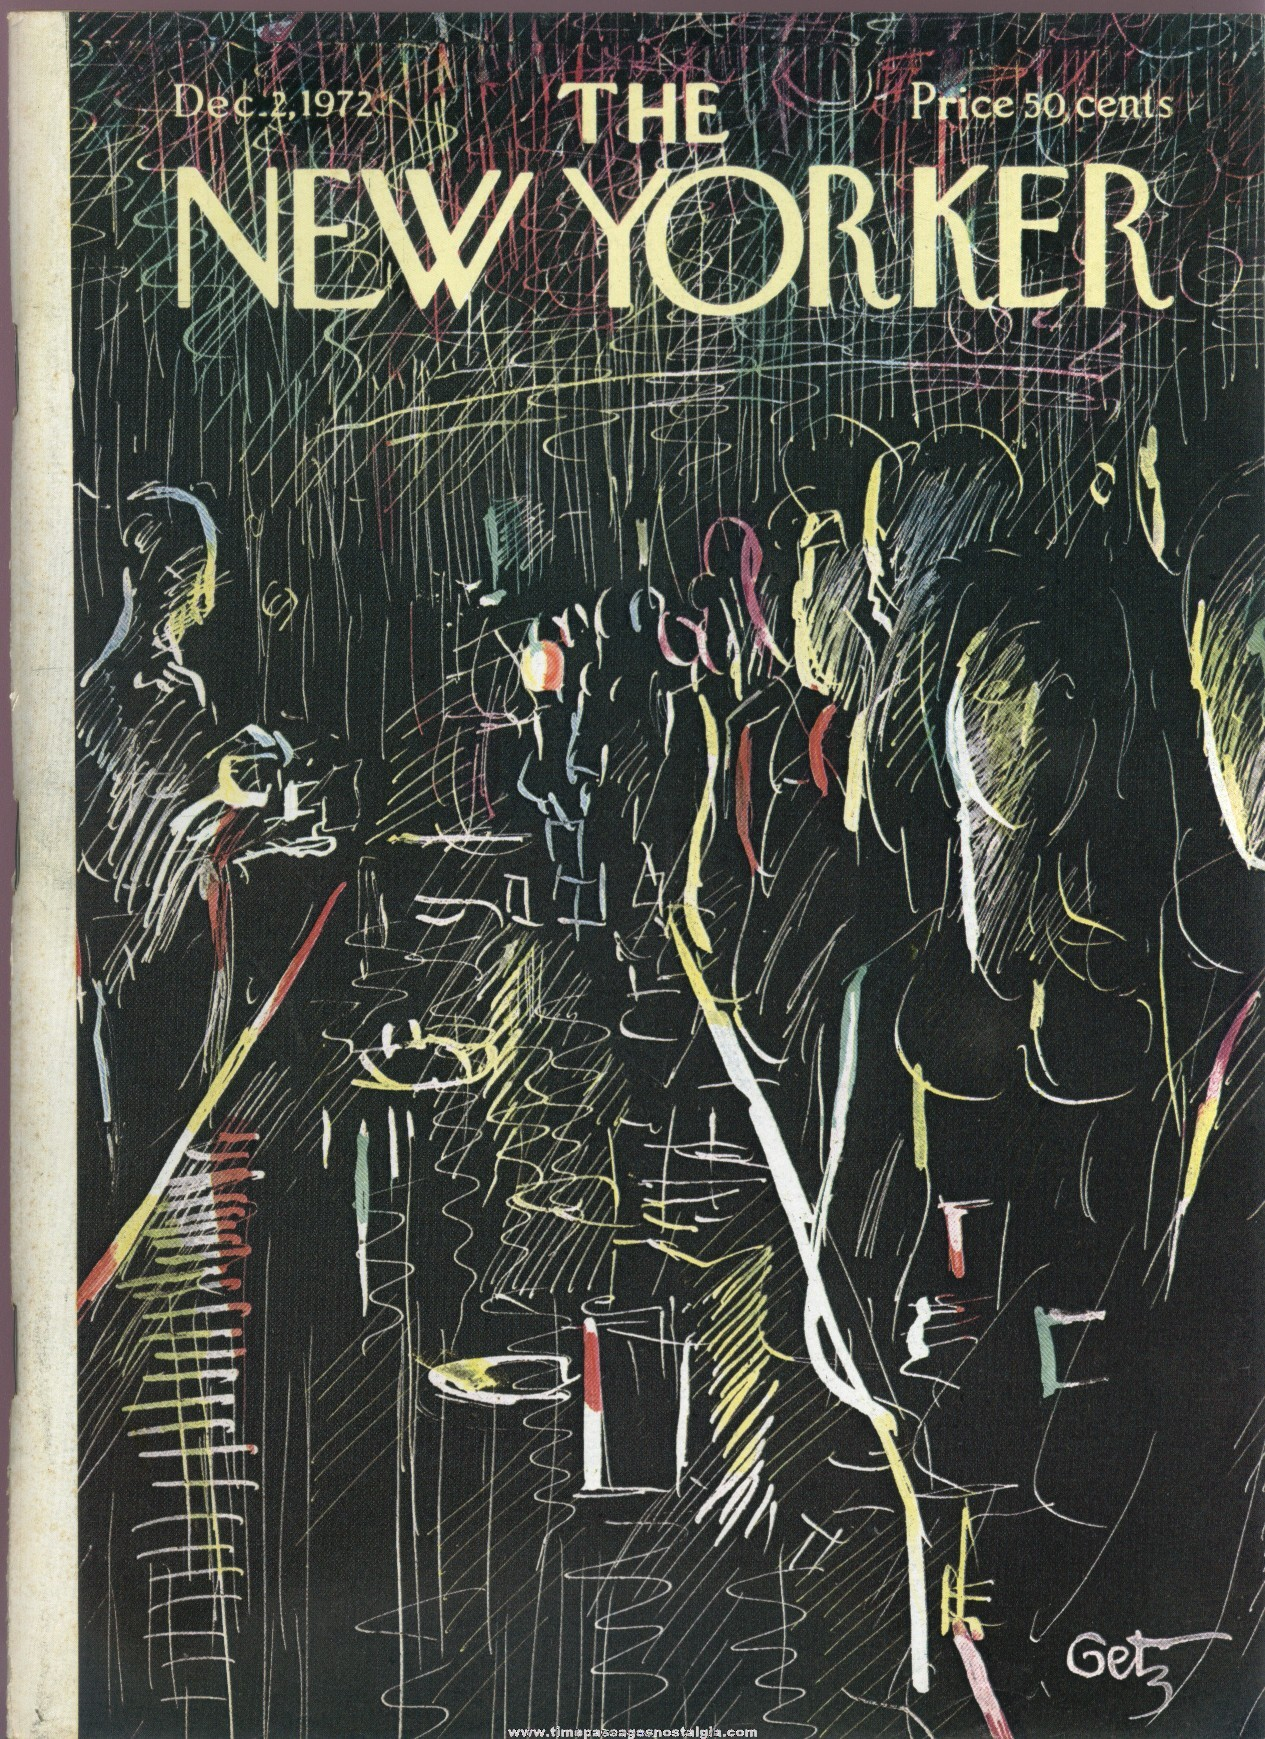 New Yorker Magazine - December 2, 1972 - Cover by Arthur Getz